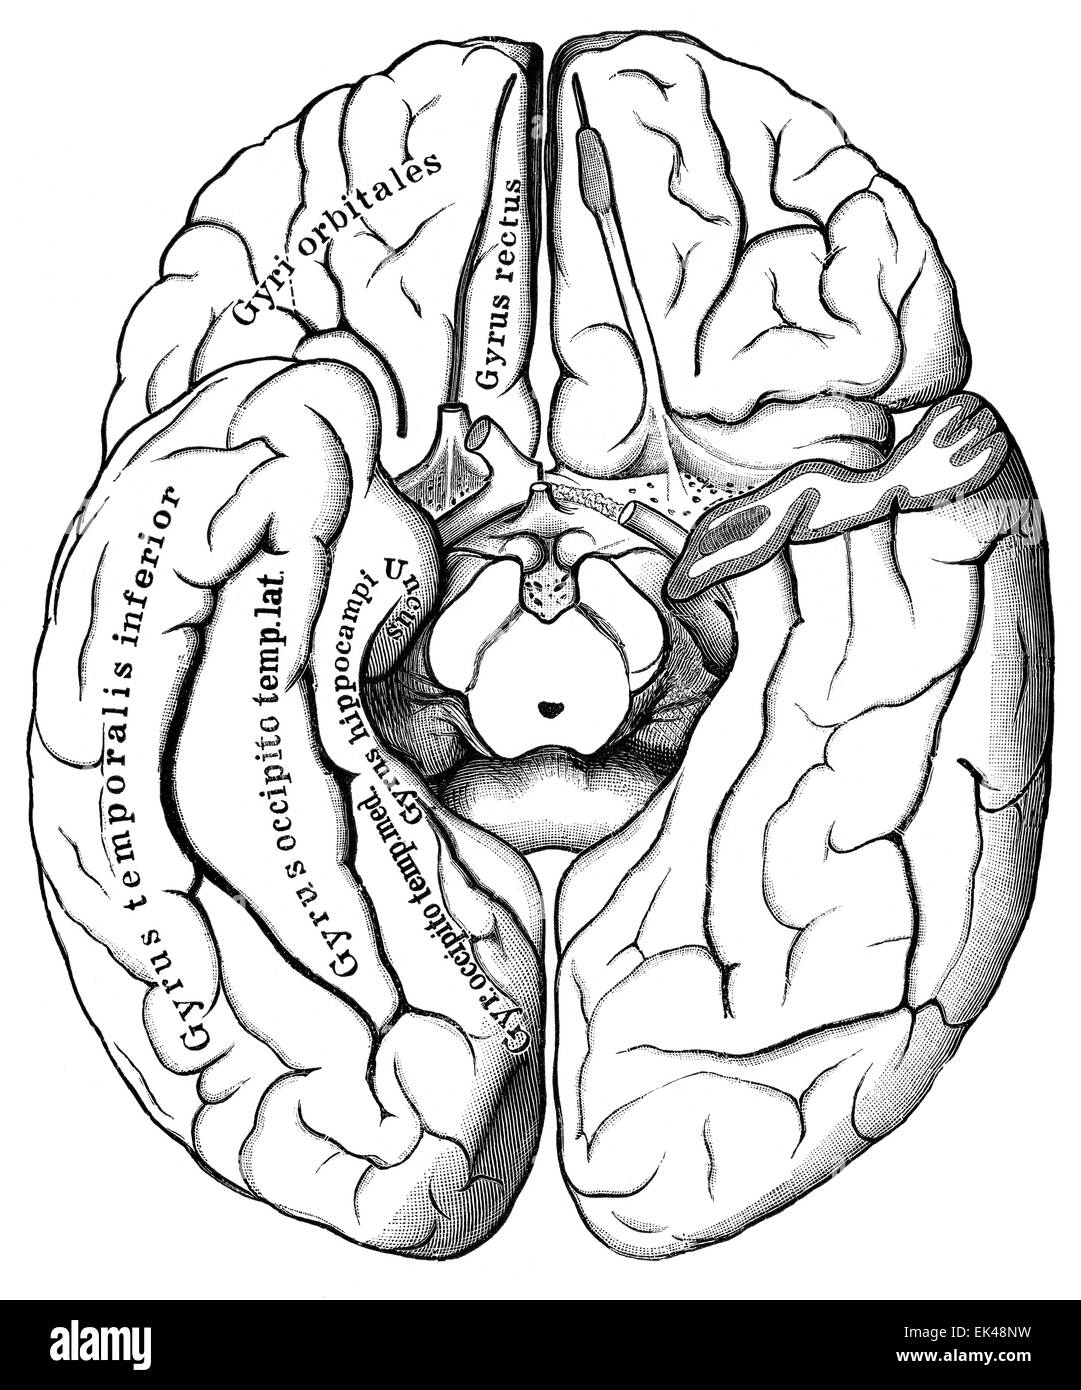 The human brain seen from below, - Stock Image